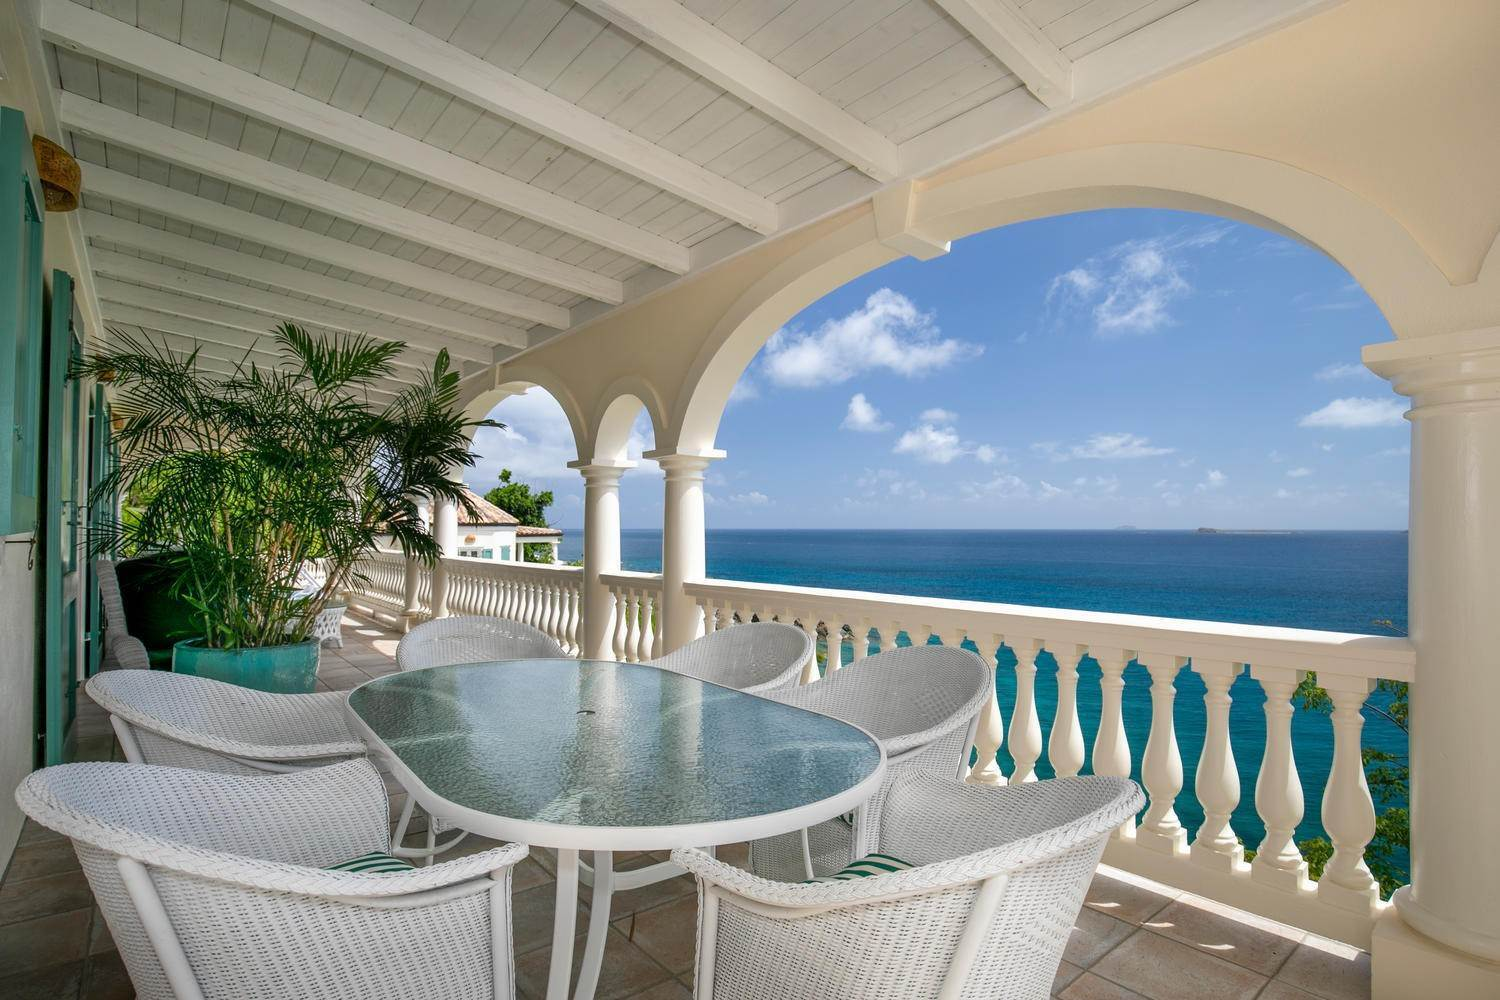 26. Single Family Home per Vendita alle ore 9-4 Con. Contant Cruz Bay St John, Virgin Islands,00830 Isole Vergini Americane